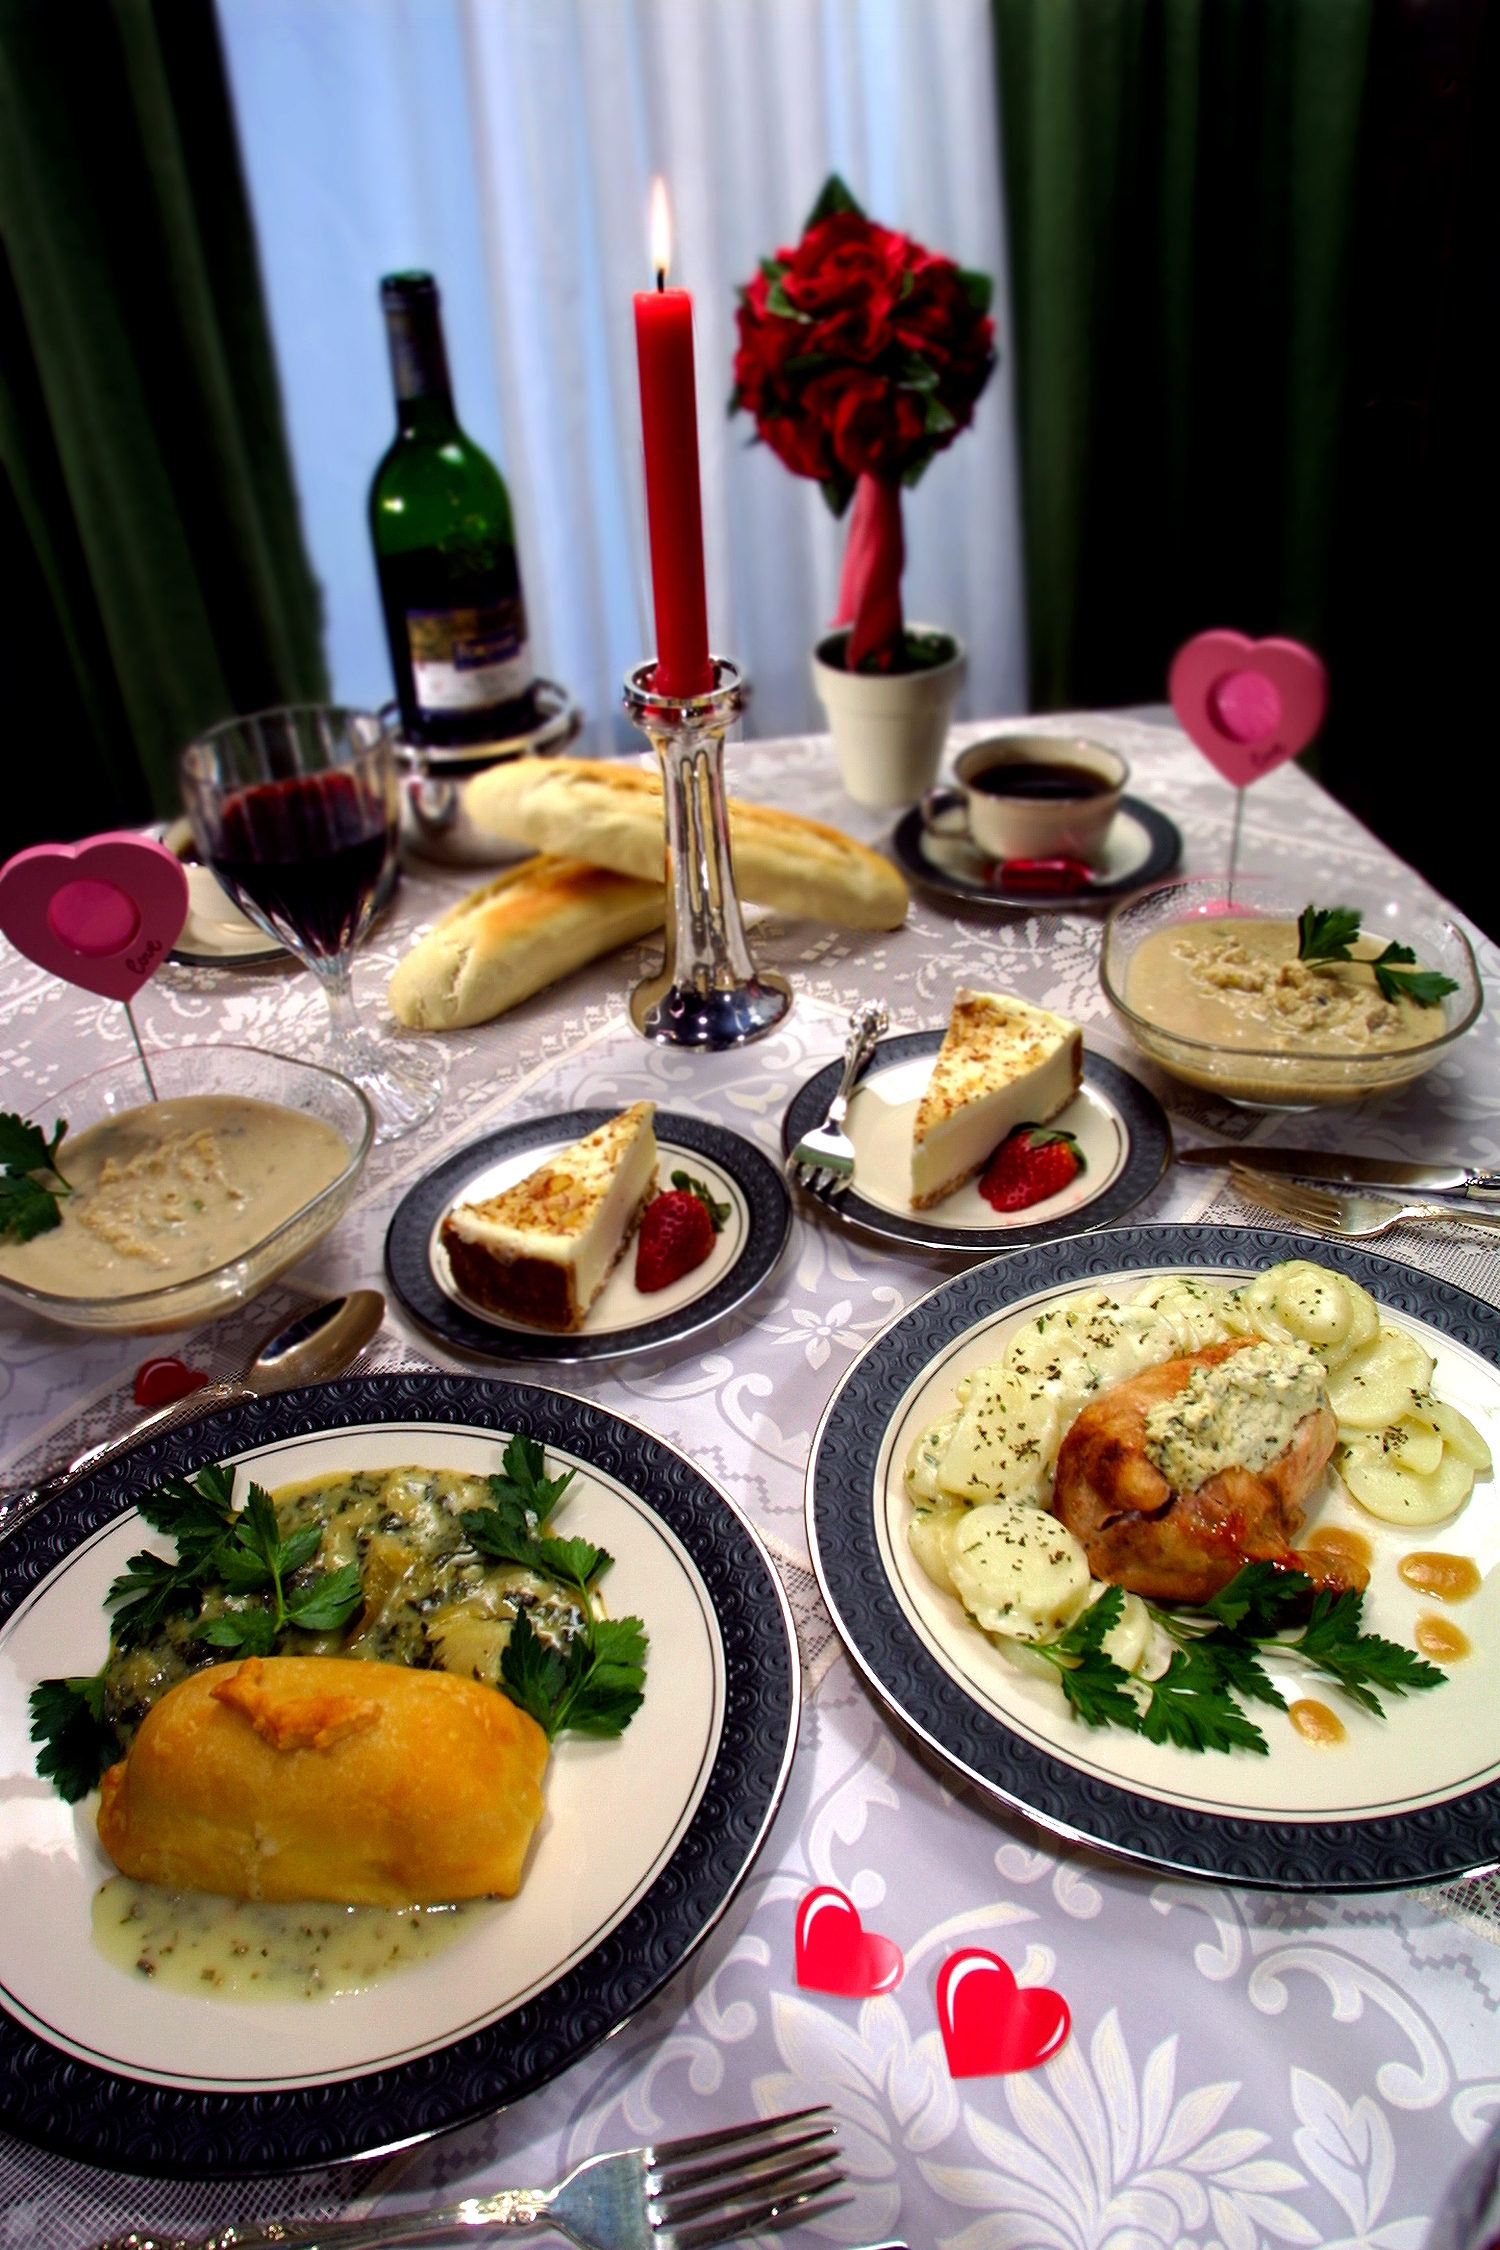 GourmetStation Provider Of Upscale Gourmet Dinners